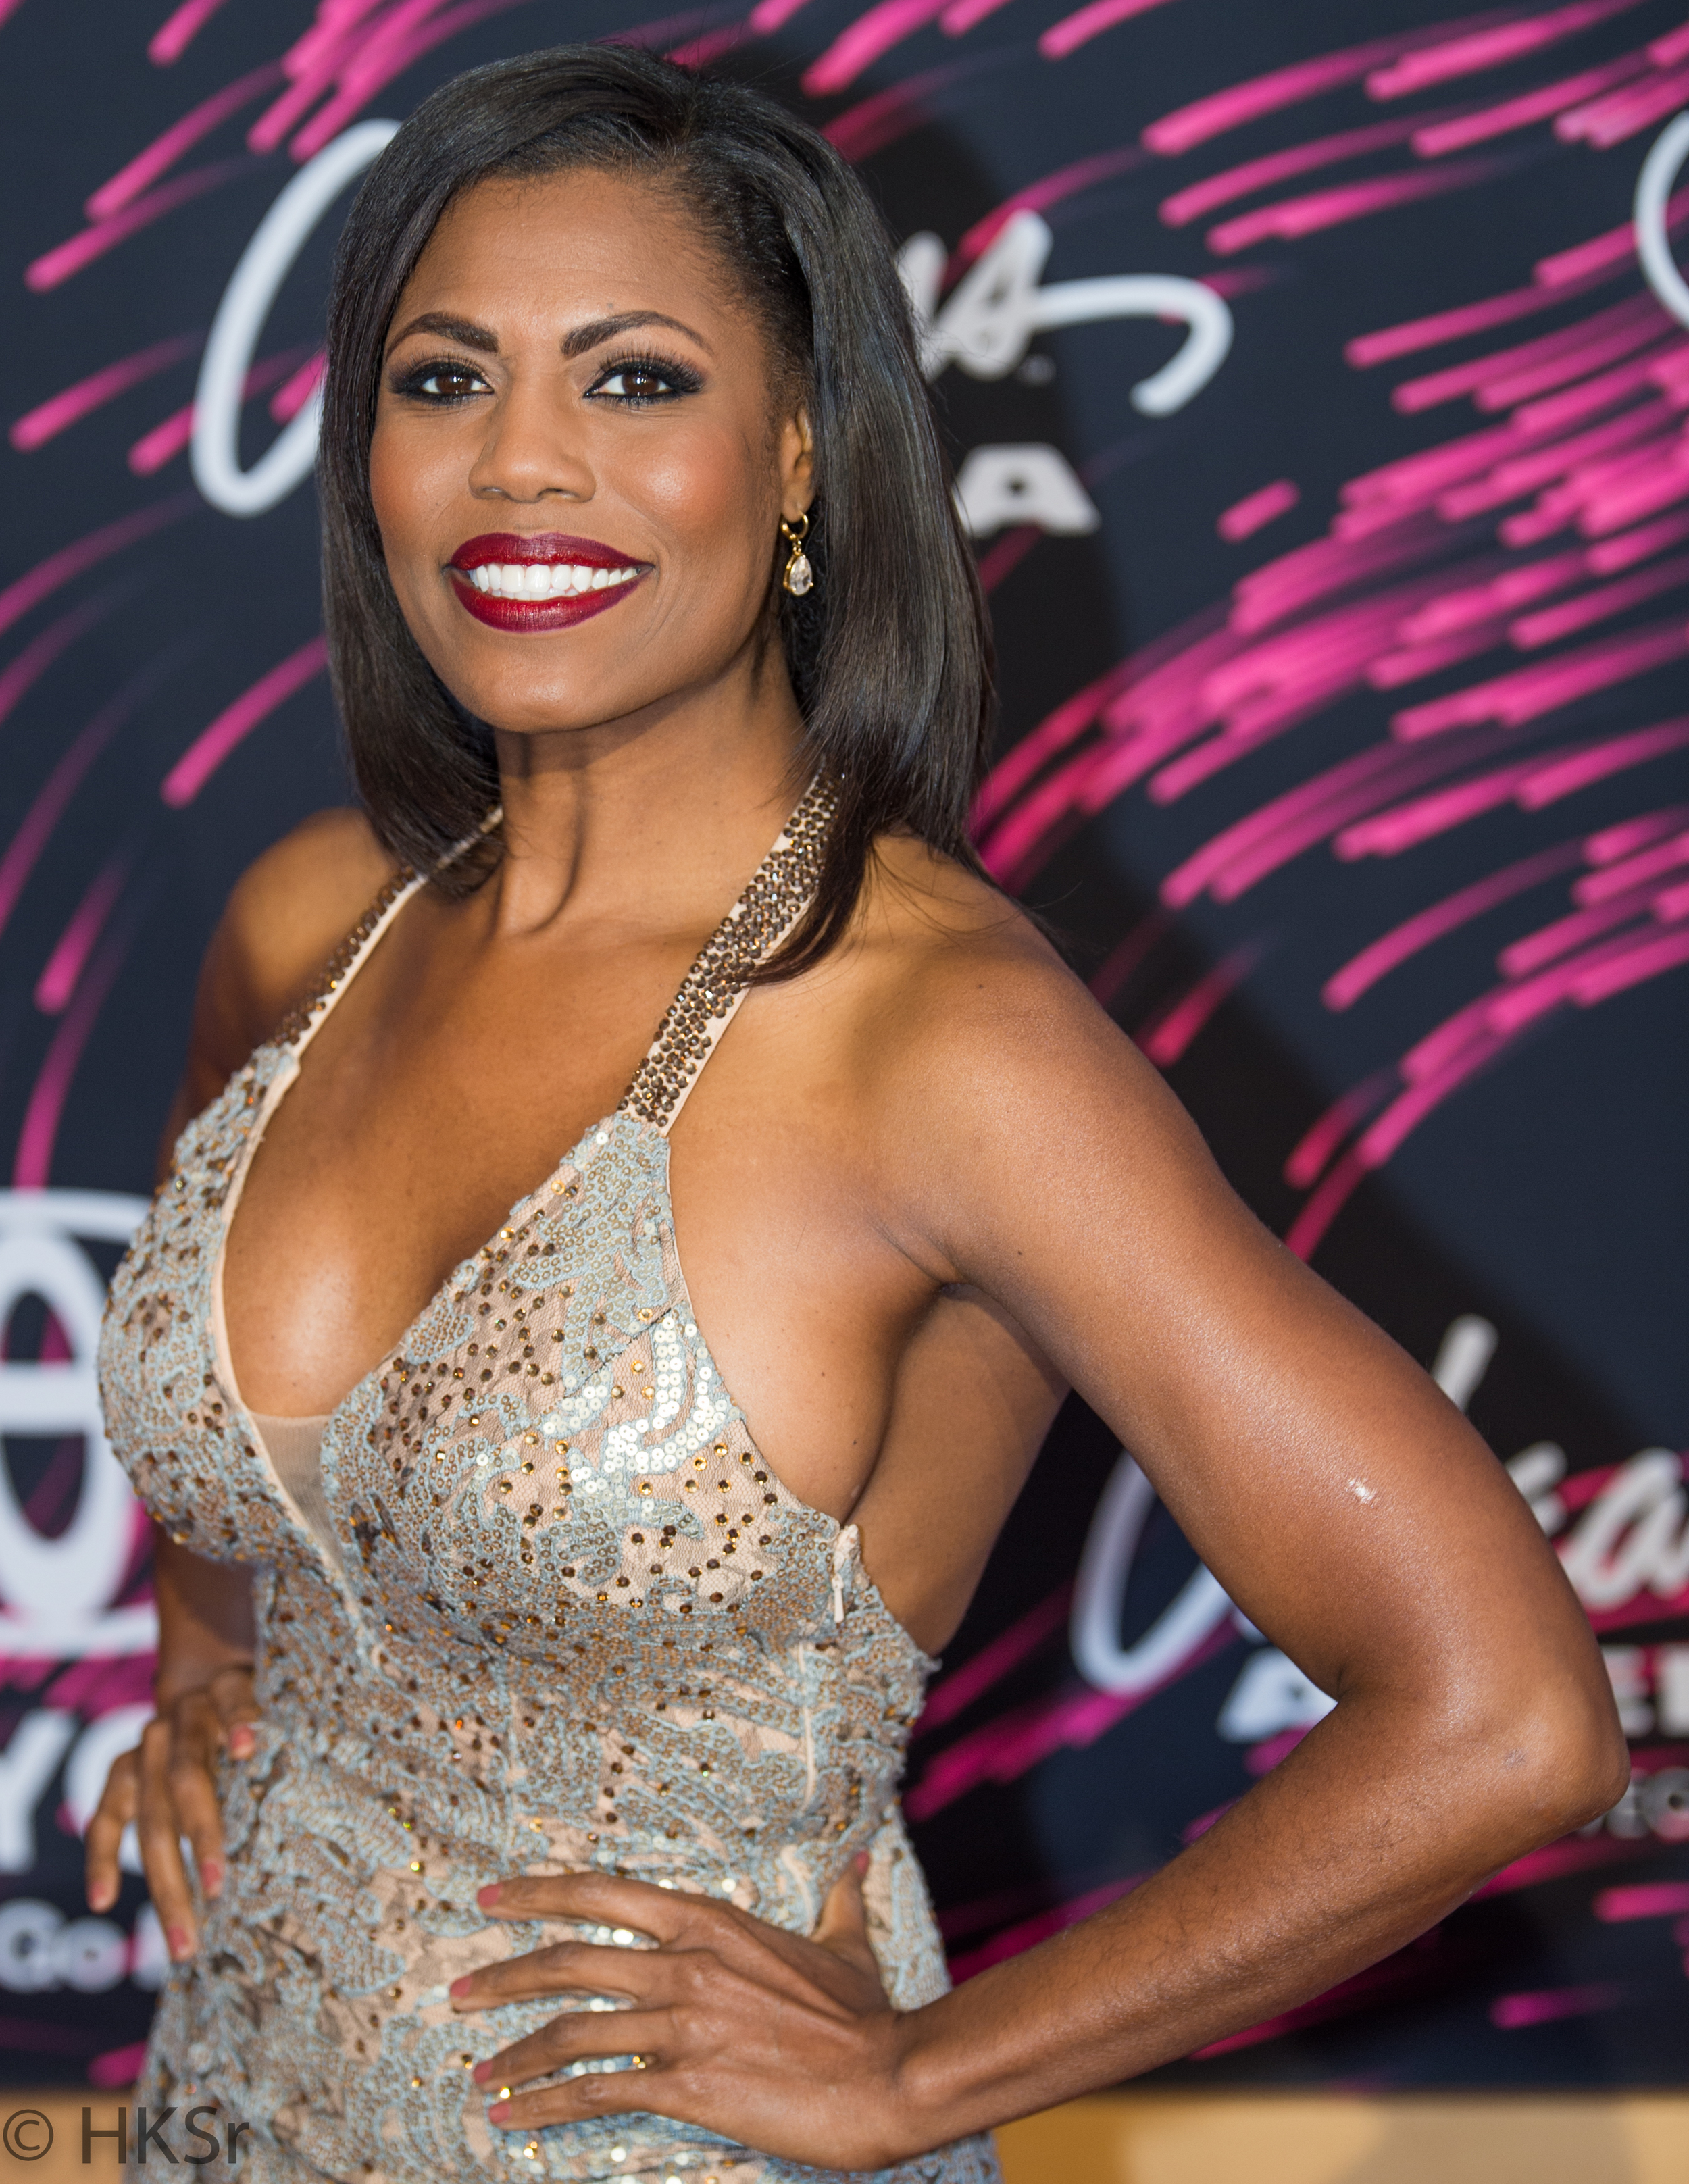 Omarosa Manigualt on the red carpet at the Soul Train Awards